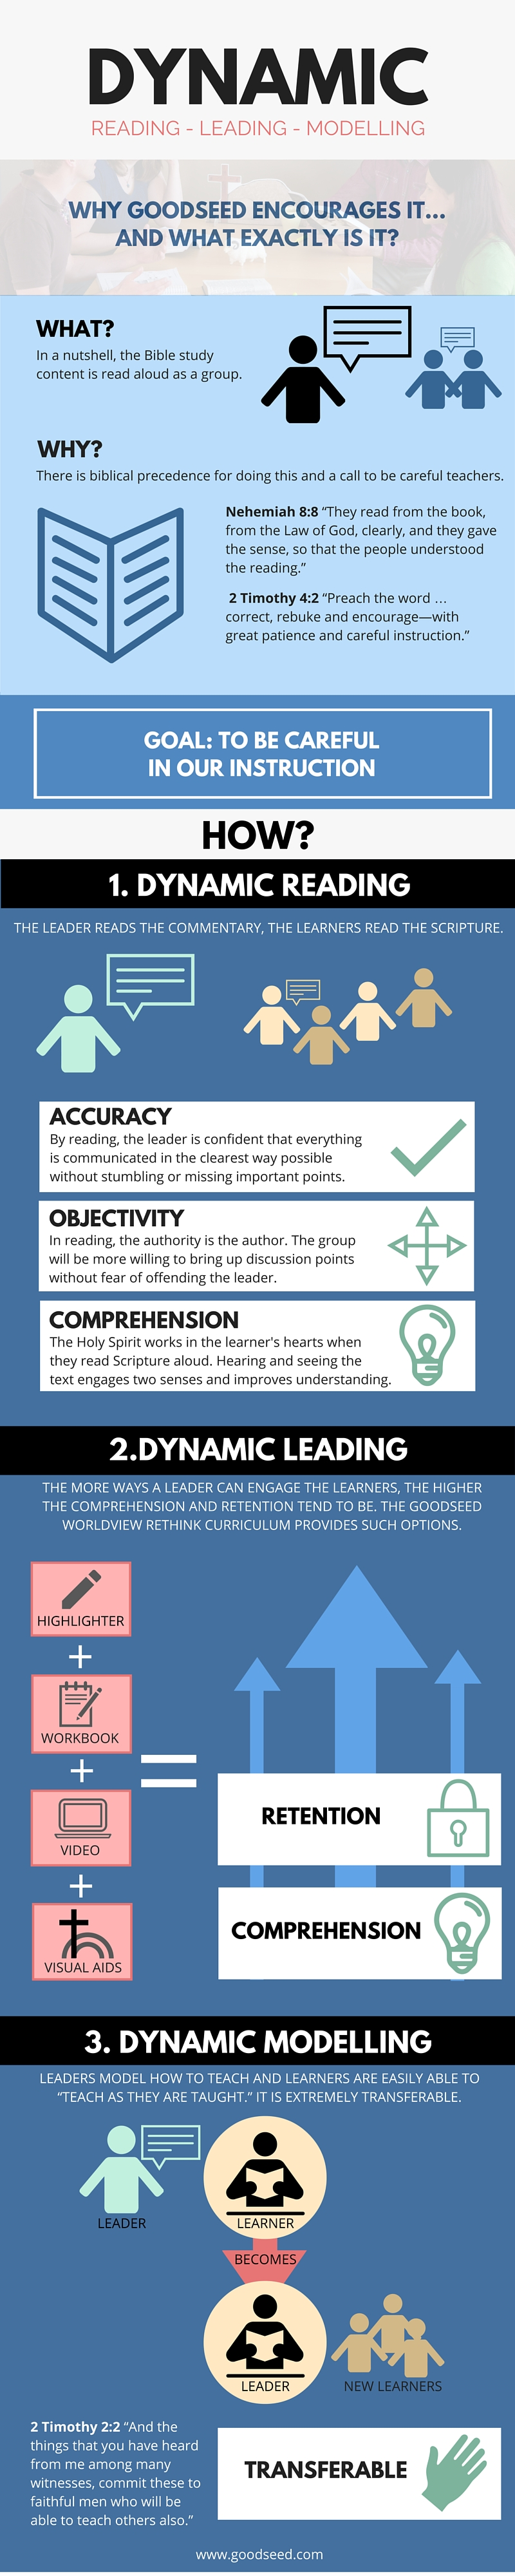 Infographic: Dynamic Reading-Leading-Modelling